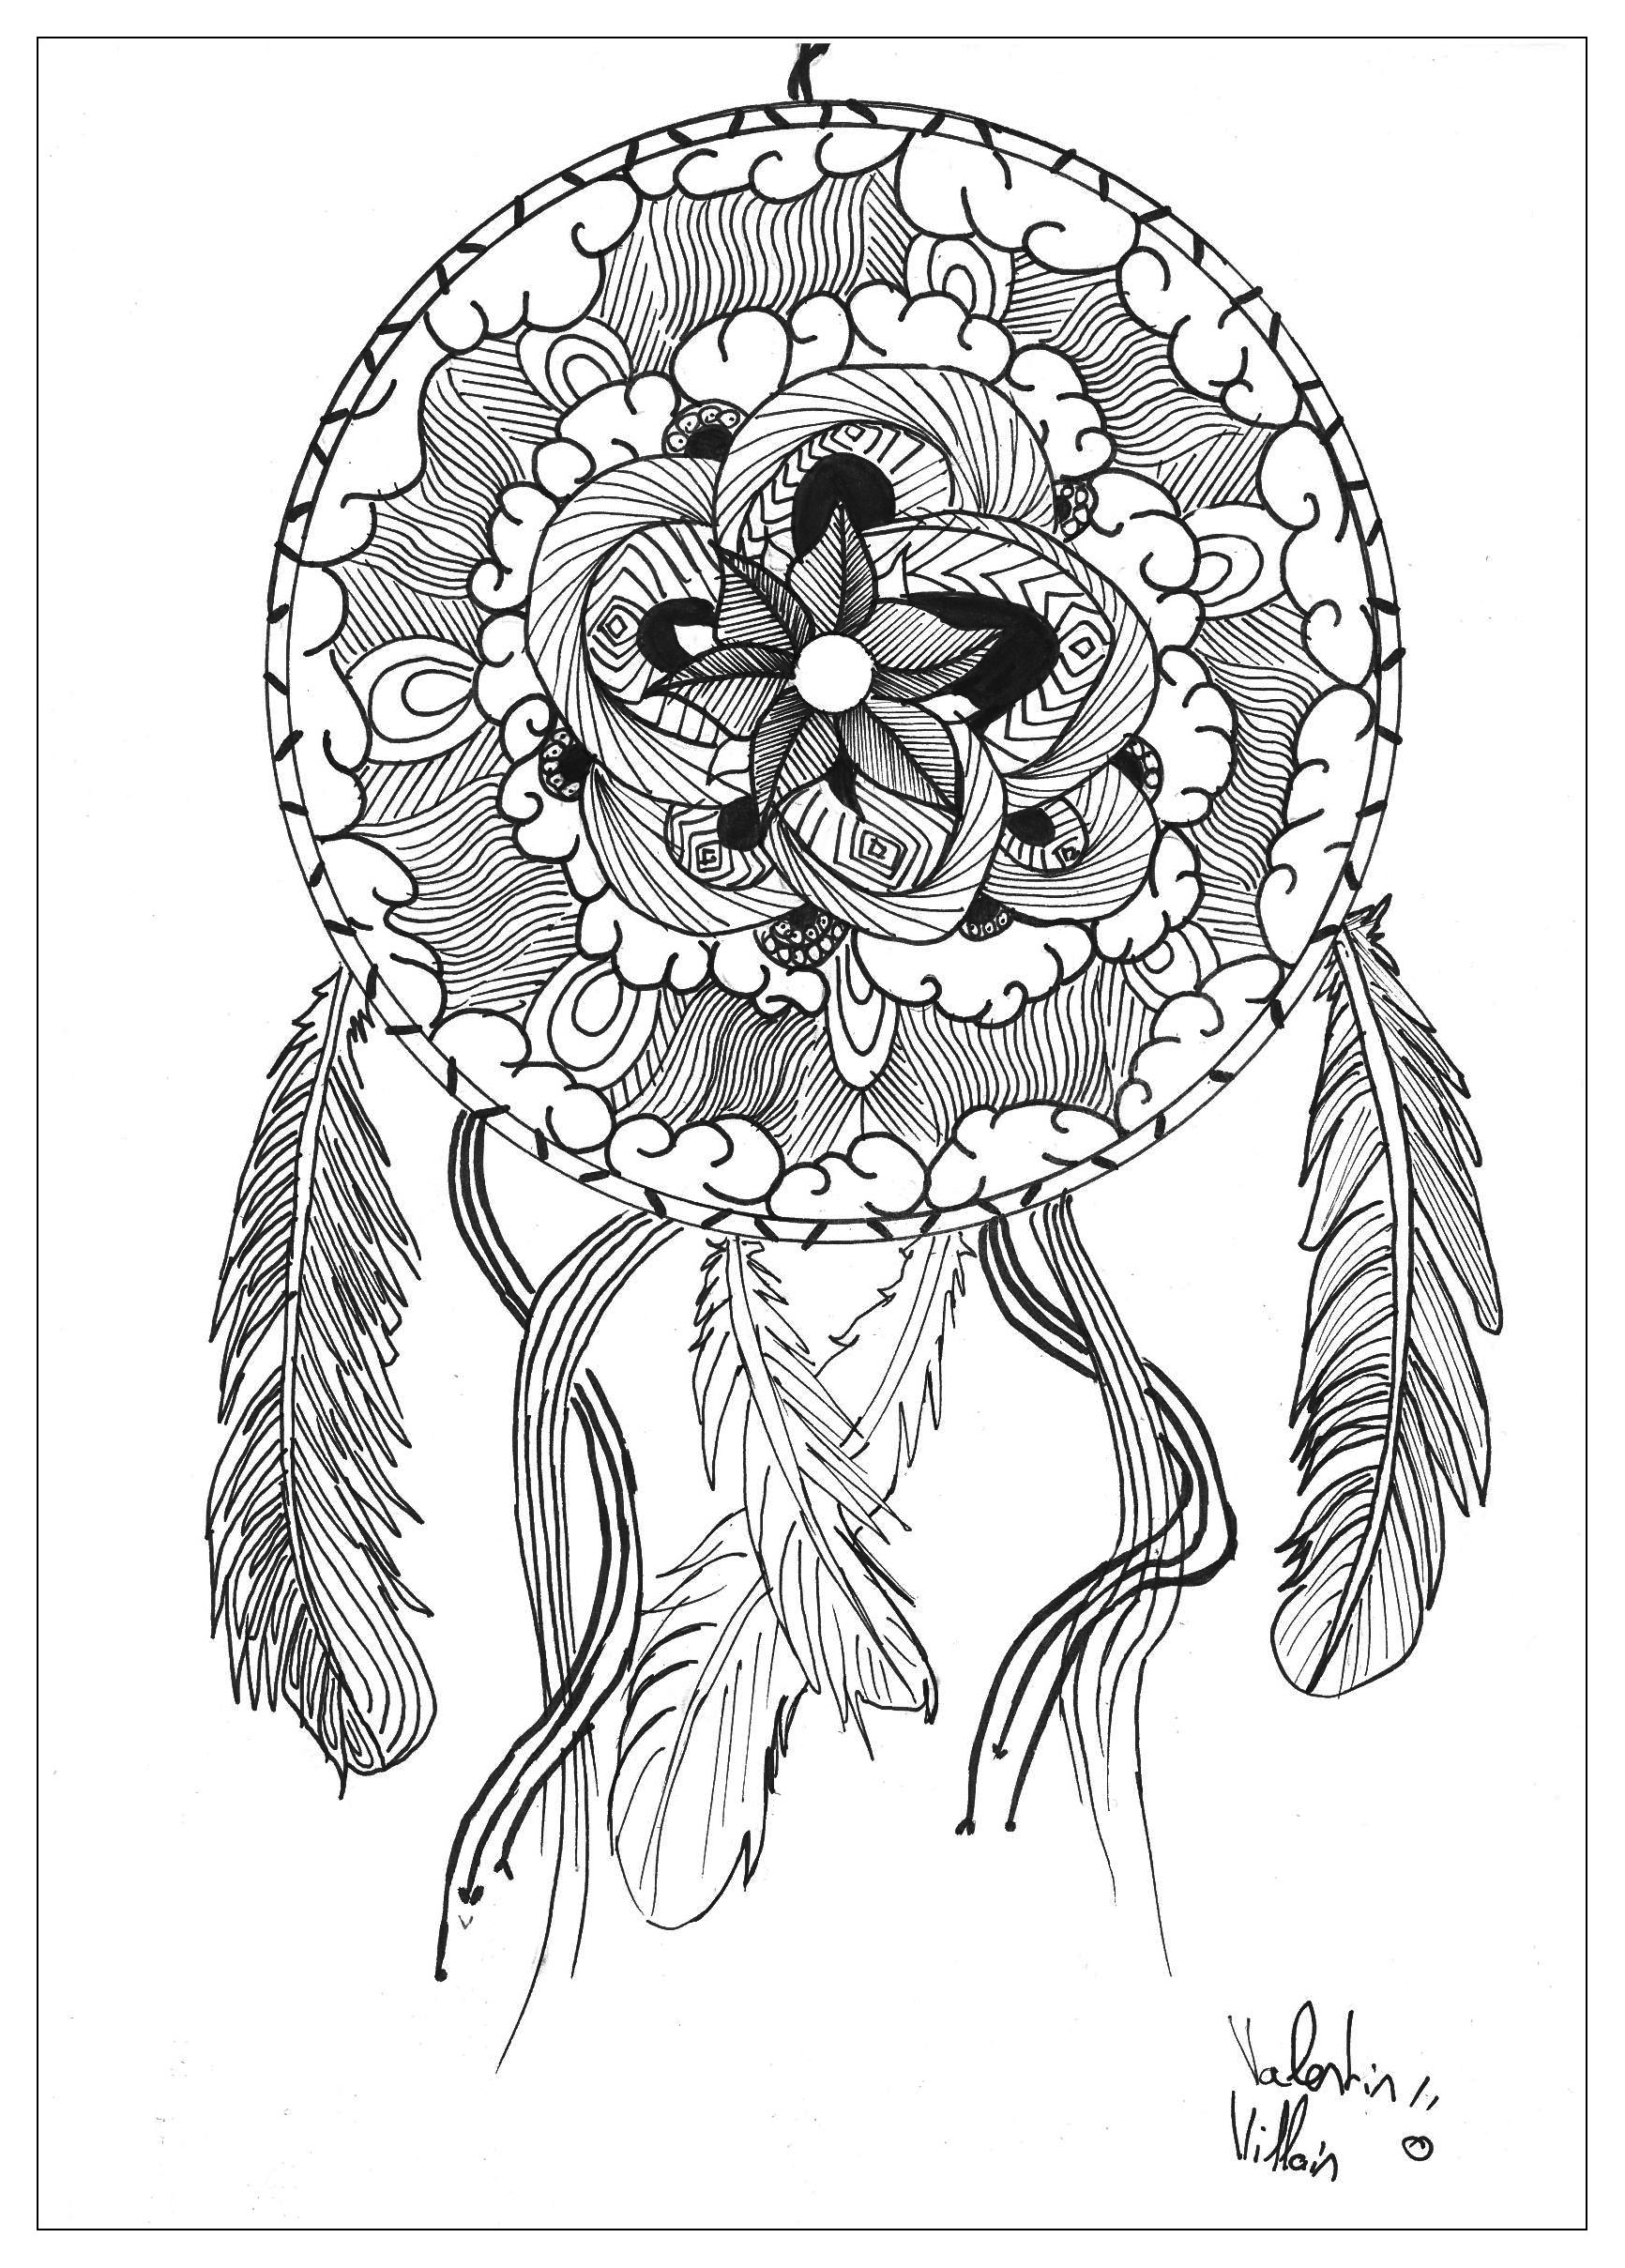 La jeune fille aux oiseaux together with thumbs coloriage adulte zentangle ecureuil par bimdeedee in addition  furthermore  in addition  in addition  moreover  in addition  furthermore  as well manga coloring pages photo 39982 together with . on intricate horse coloring pages for adults